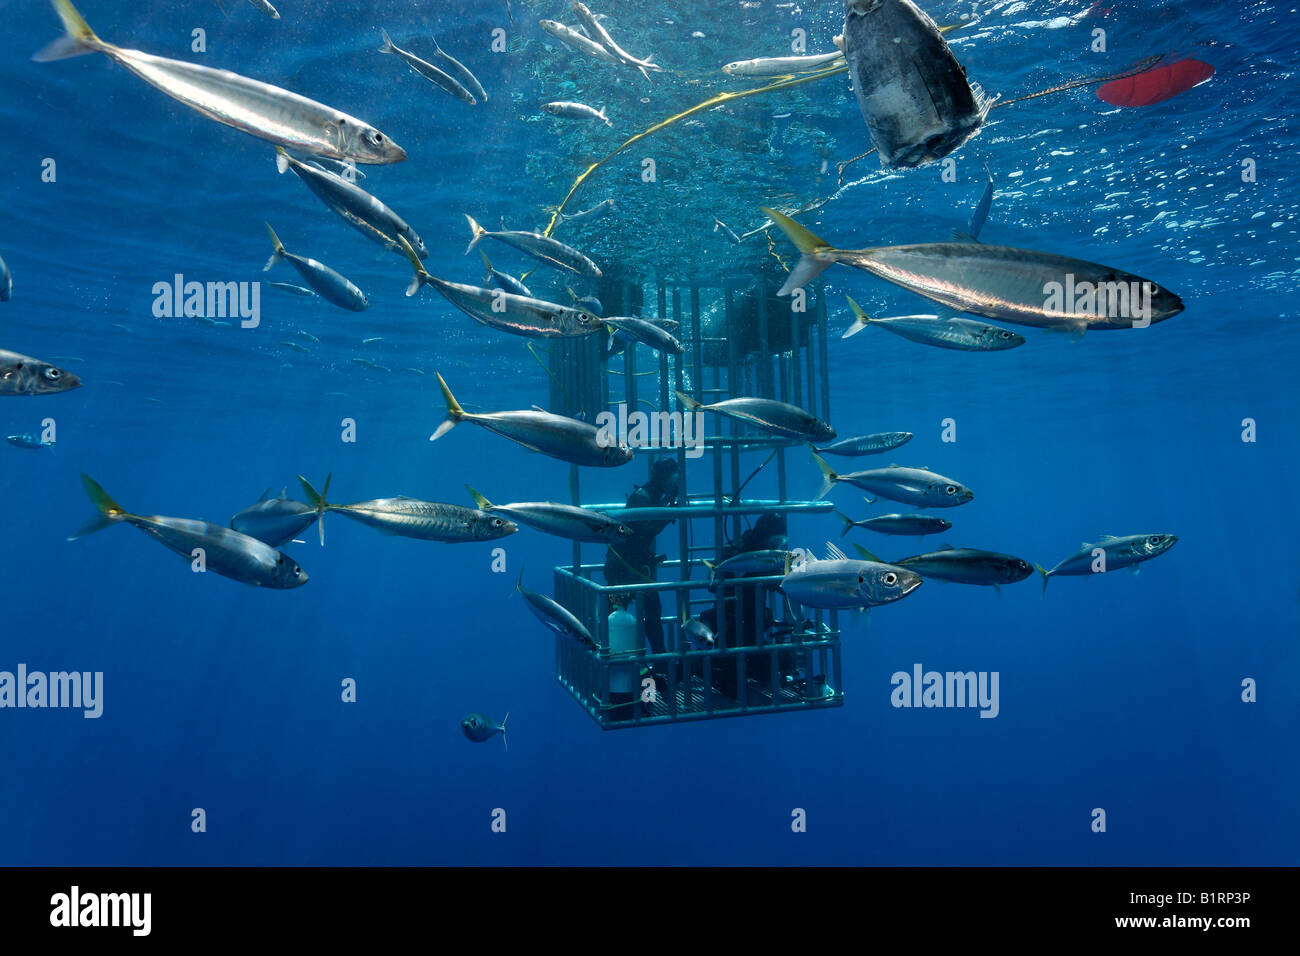 Scuba divers in a cage observing a Great White Shark (Carcharodon carcharias), Guadalupe Island, Mexico, Pacific, Stock Photo